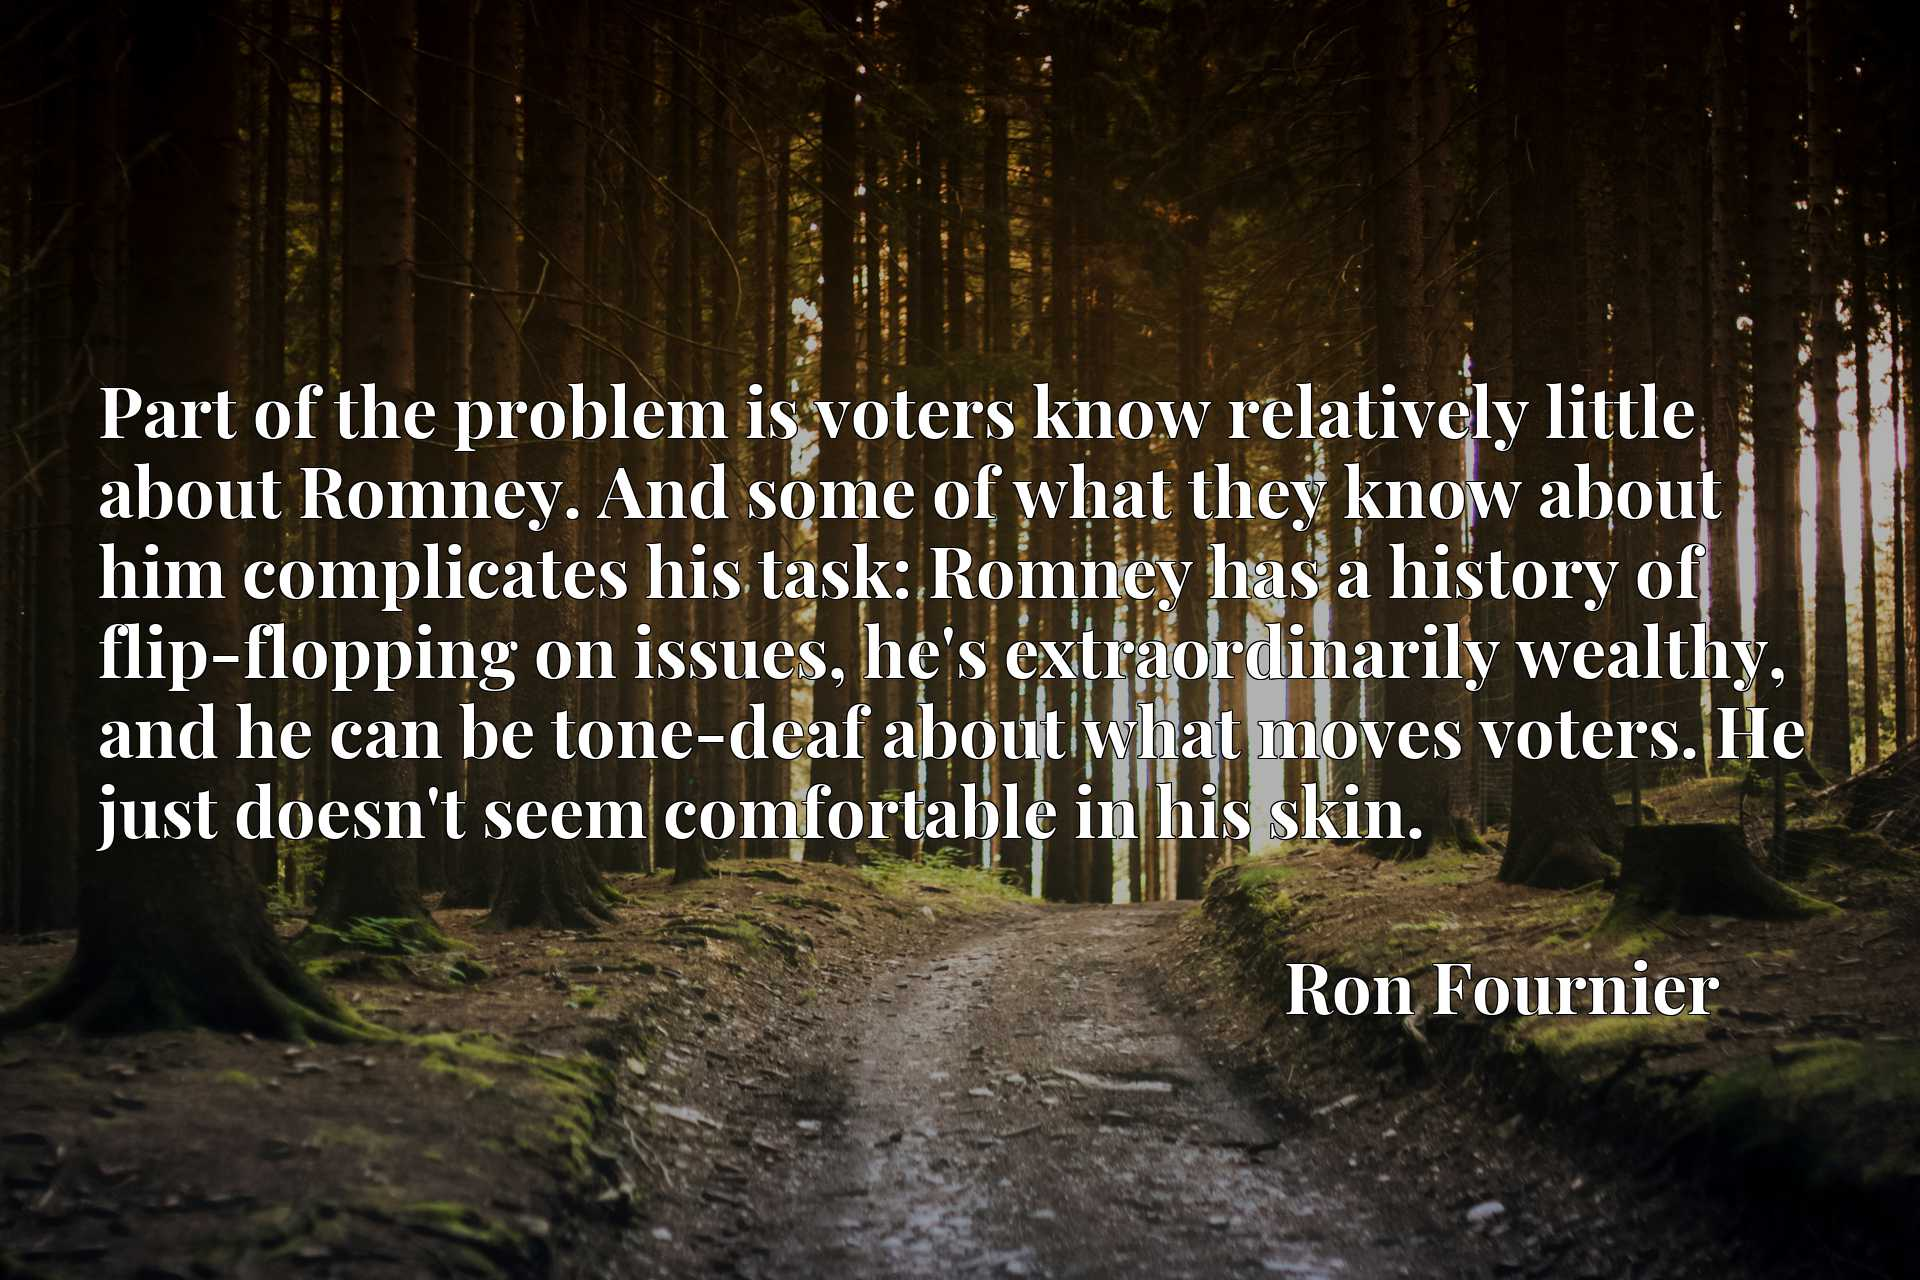 Part of the problem is voters know relatively little about Romney. And some of what they know about him complicates his task: Romney has a history of flip-flopping on issues, he's extraordinarily wealthy, and he can be tone-deaf about what moves voters. He just doesn't seem comfortable in his skin.